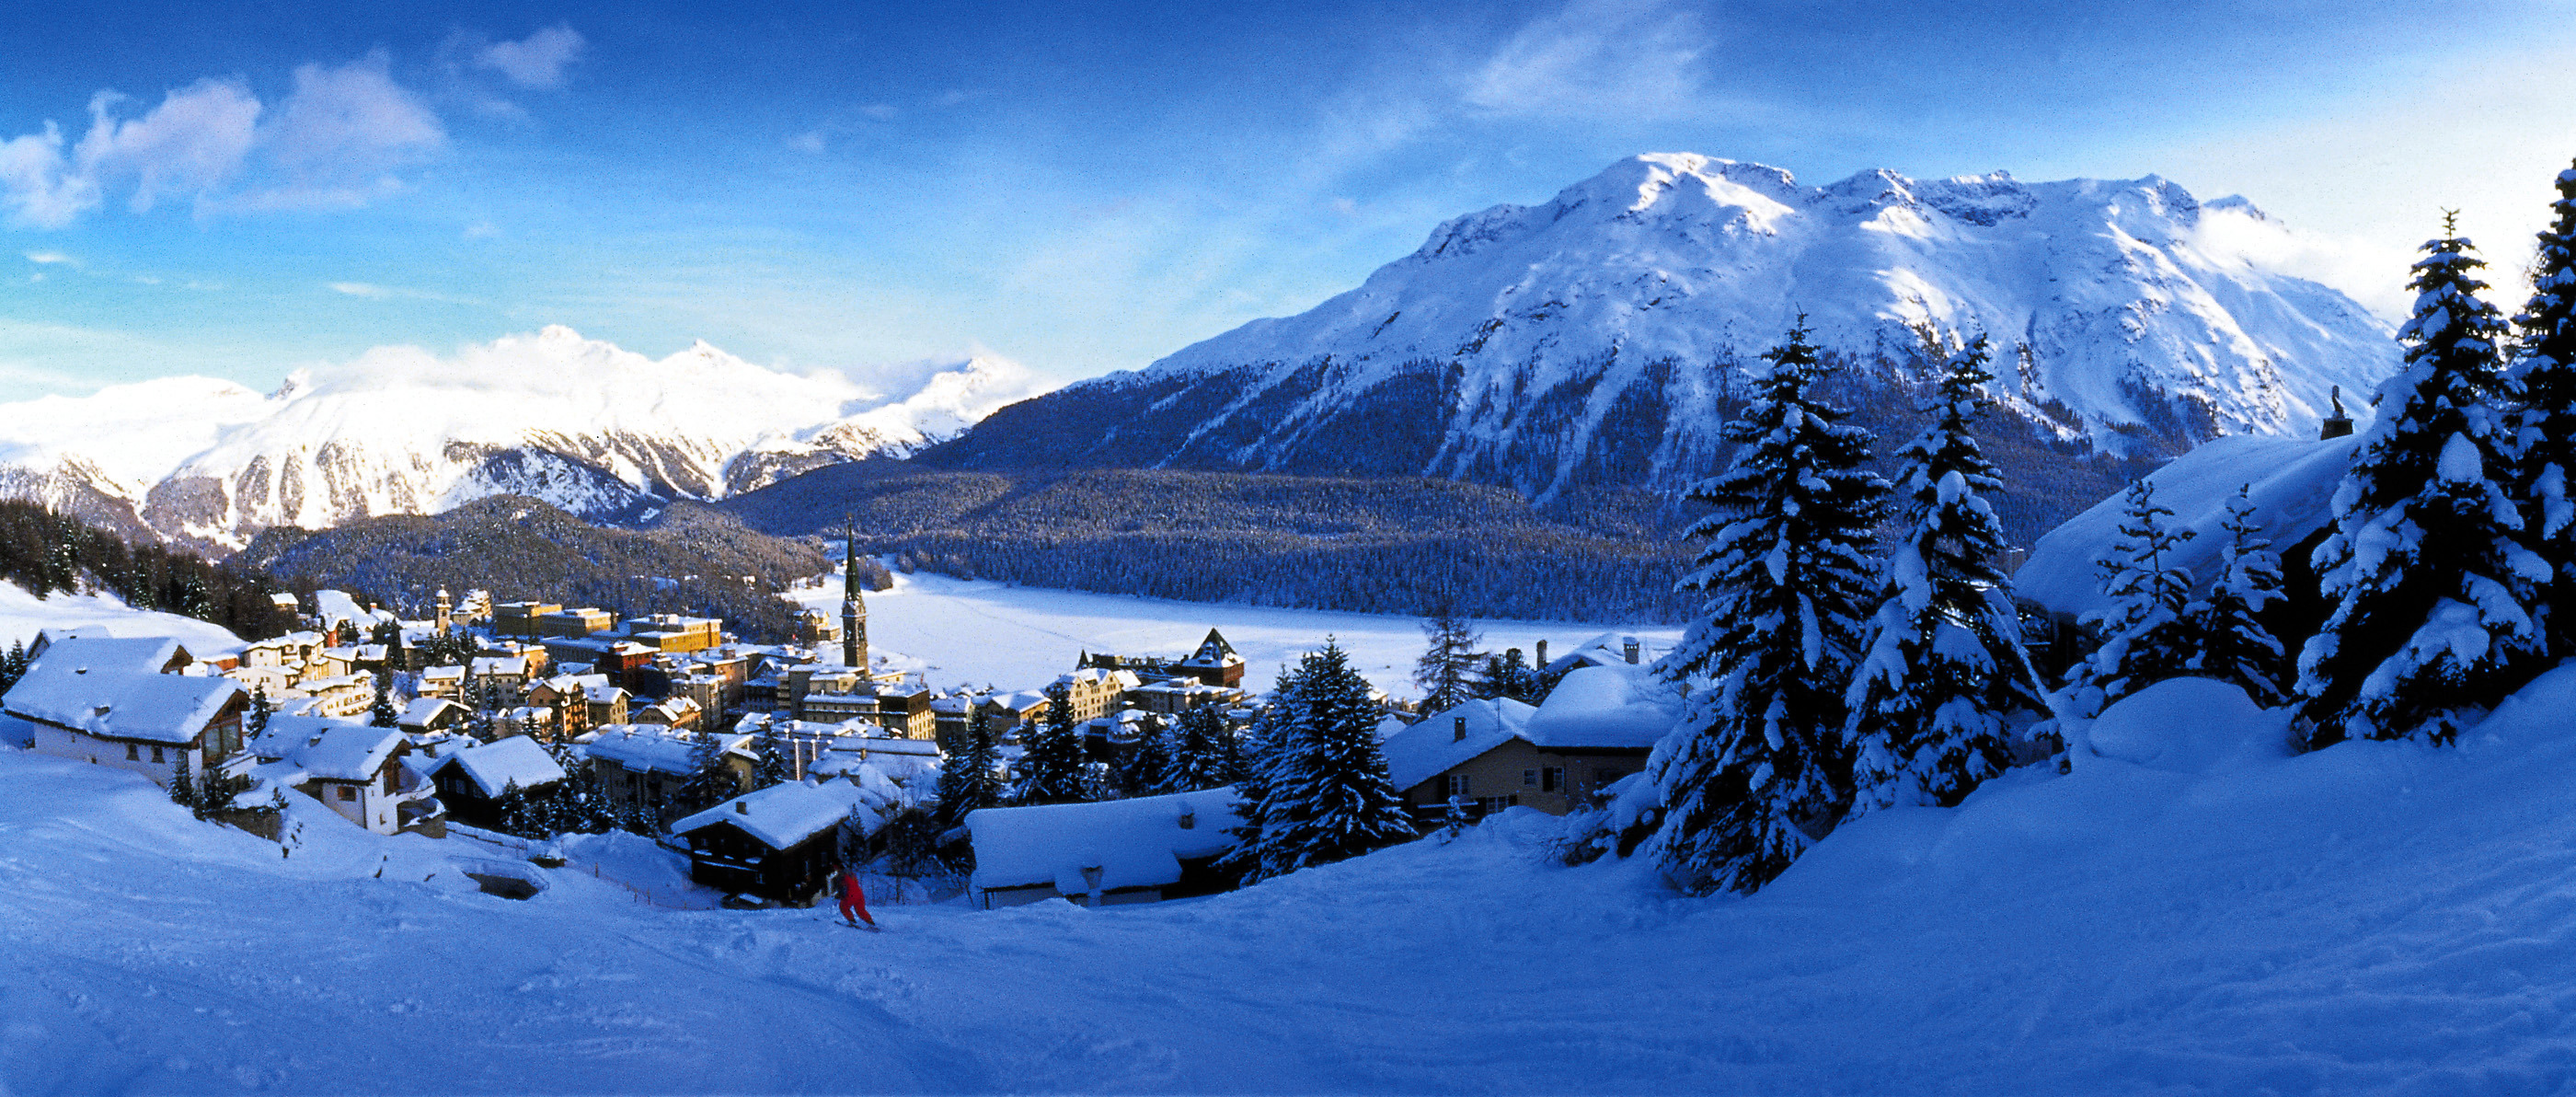 ENGADIN ST. MORITZ - St. Moritz, der weltberuehmte Ferienort auf 1'856 m.ue.M. 5'600 Einwohner, 5'600 Hotelbetten in 40 Hotels (ueber 50 % in 4- und 5-Stern Kategorie), 7'300 Betten in Ferienwohnungen, wobei 2'900 vermietet werden.  350 km Ski- und Snowboardpisten, 55 Bergbahnen, 180 km Langlaufloipen, 150 km Winterwanderwege. 150 attraktive Veranstaltungen pro Saison. Grosses, z.T. weltweit einmaliges Sportangebot.  St. Moritz, the famous holiday resort at 1,856 m. altitude. 5,600 inhabitants, 5,600 hotel beds in 40 hotels (over 50% in the 4- and 5-star categories), 7,300 beds in holiday apartments, of which 2,900 are rented out. 350 km. skiing and snowboarding runs, 55 mountain lifts and railways, 180 km. cross-country skiing trails, 150 km. winter hiking trails. 150 exciting events each season. Virtually unique in the world for its broad sports offering.  Copyright by ENGADIN St. Moritz By-line: swiss-image.ch/Christof Sonderegger